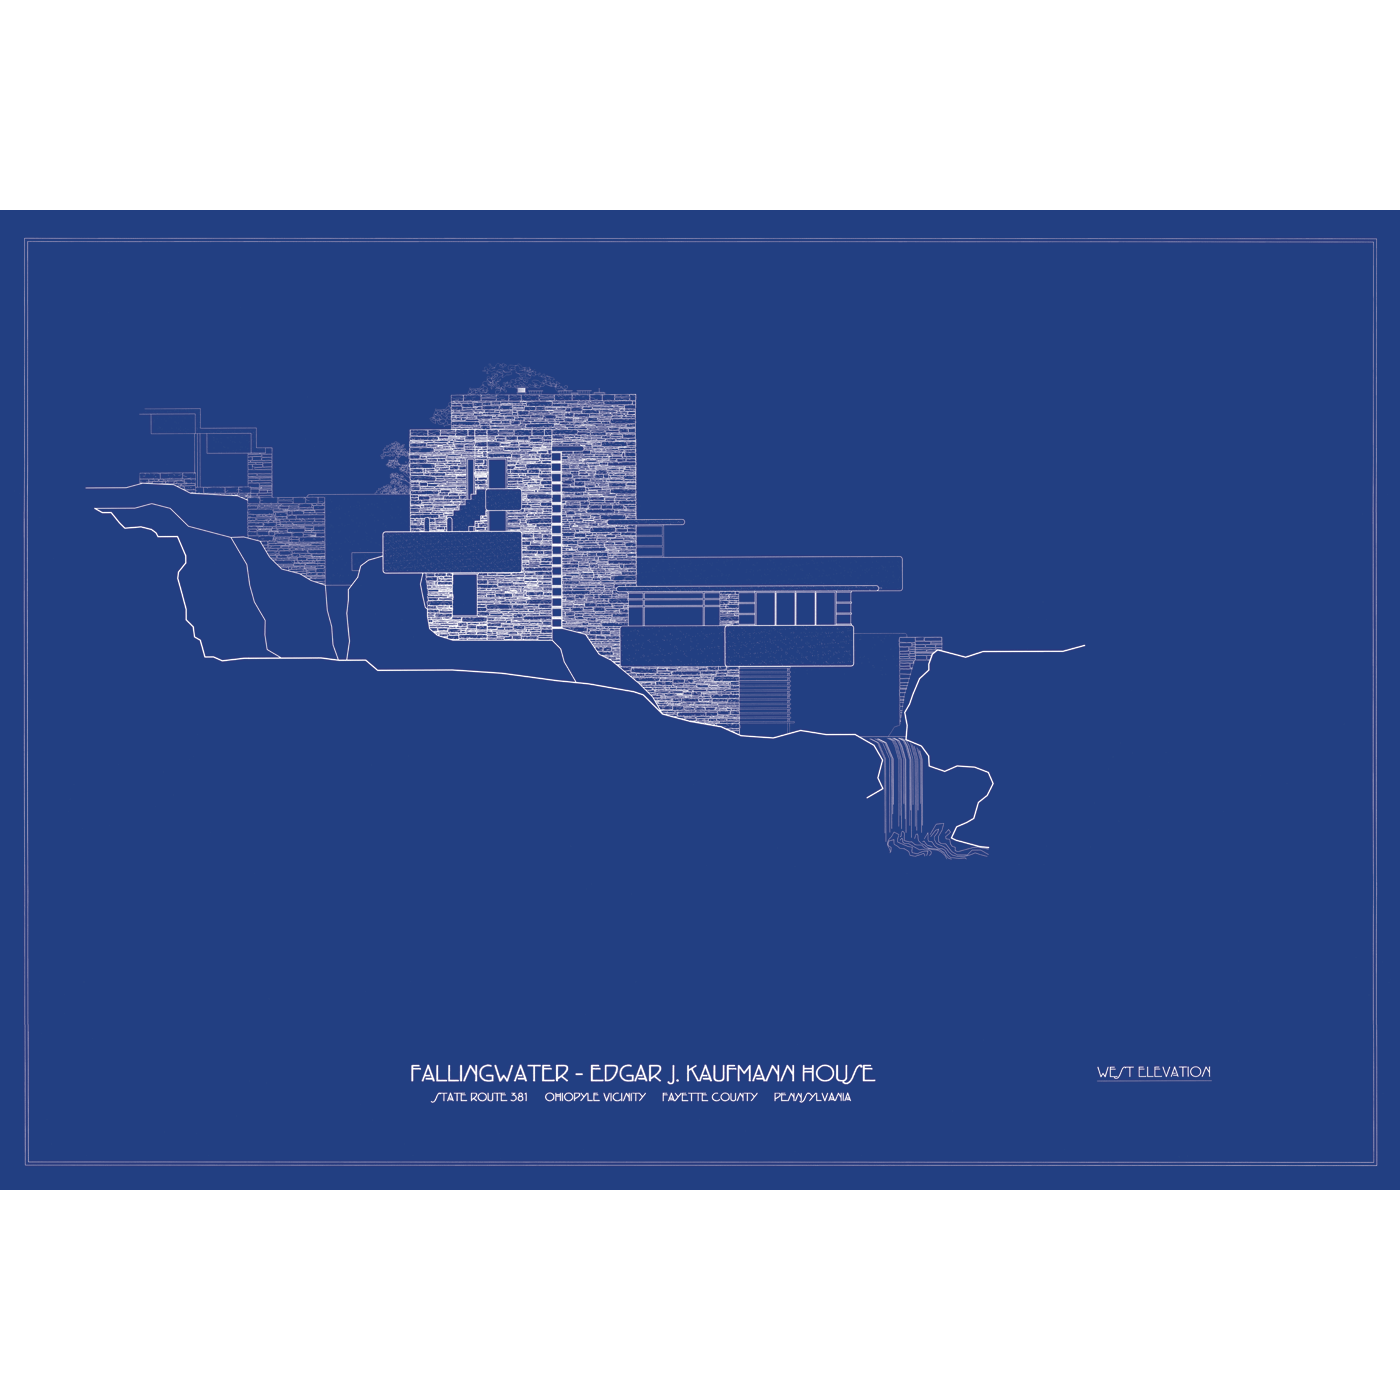 Blueprint art would be cool frank lloyd wright fallingwater west blueprint art would be cool frank lloyd wright fallingwater west malvernweather Image collections